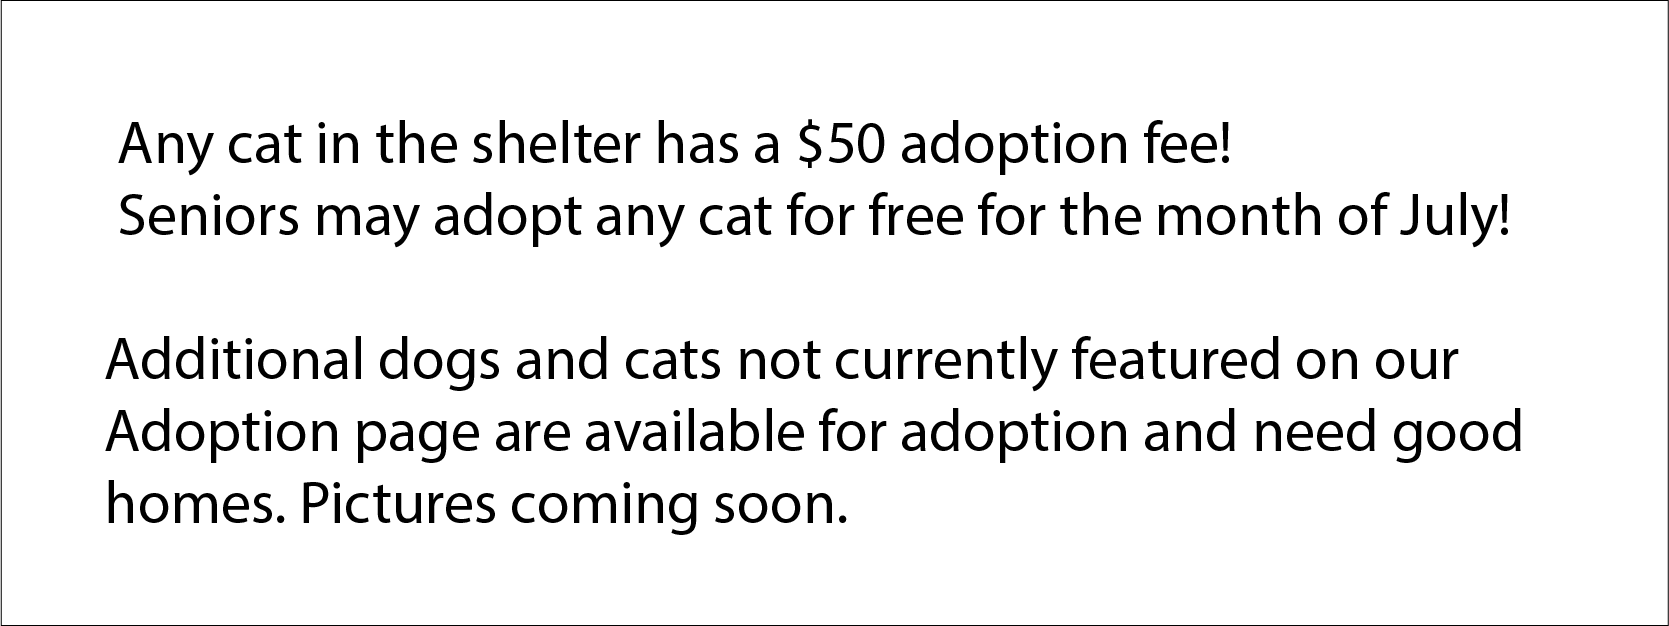 Any cat in the shelter has a $50 adoption fee!